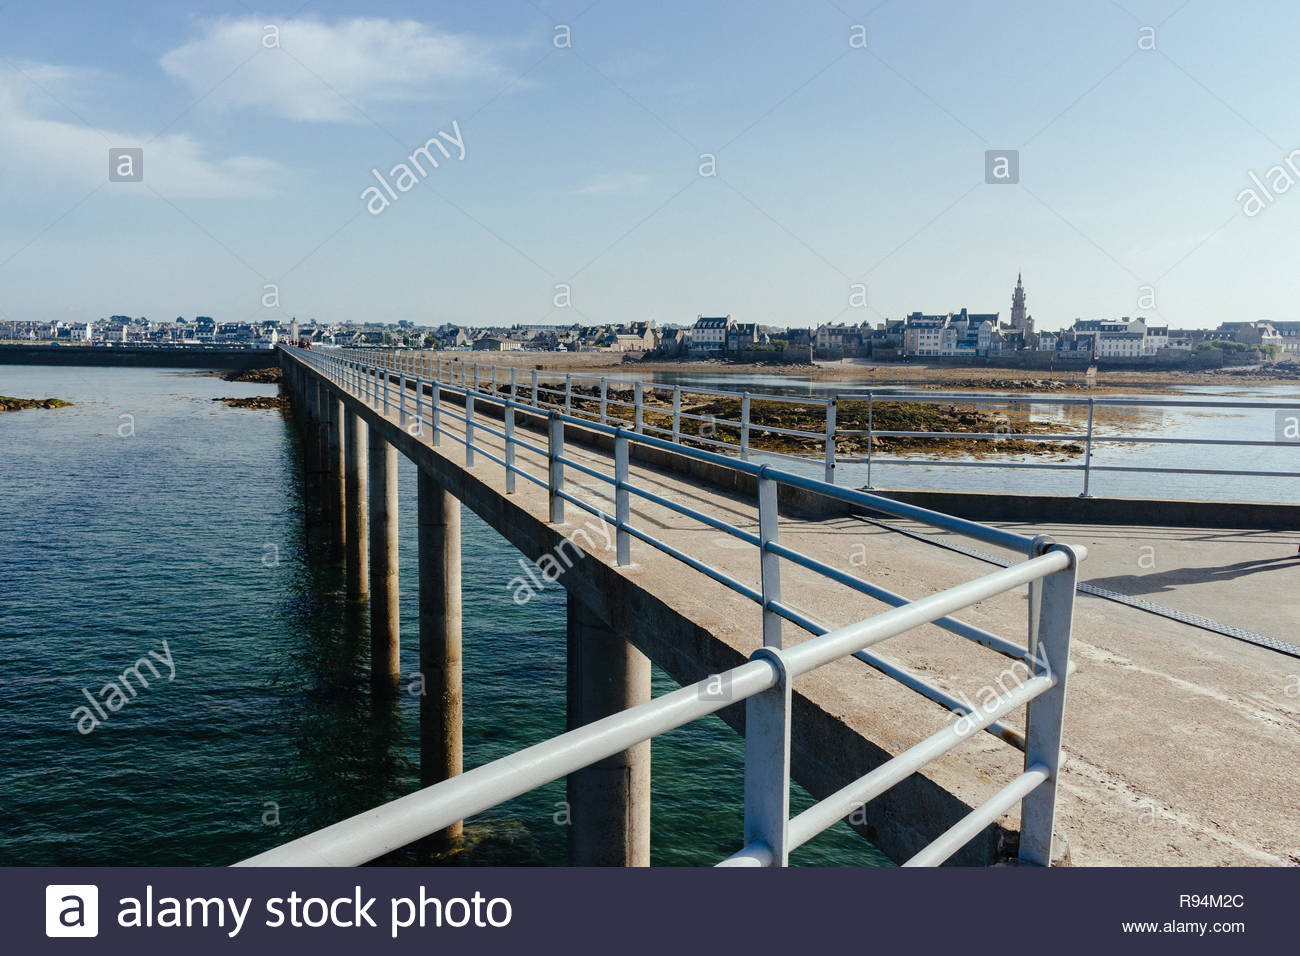 Pedestrian bridge between Île-de-Batz and Roscoff 'a small town of character' where the first center for thalassotherapy in Europe opened. - Stock Image